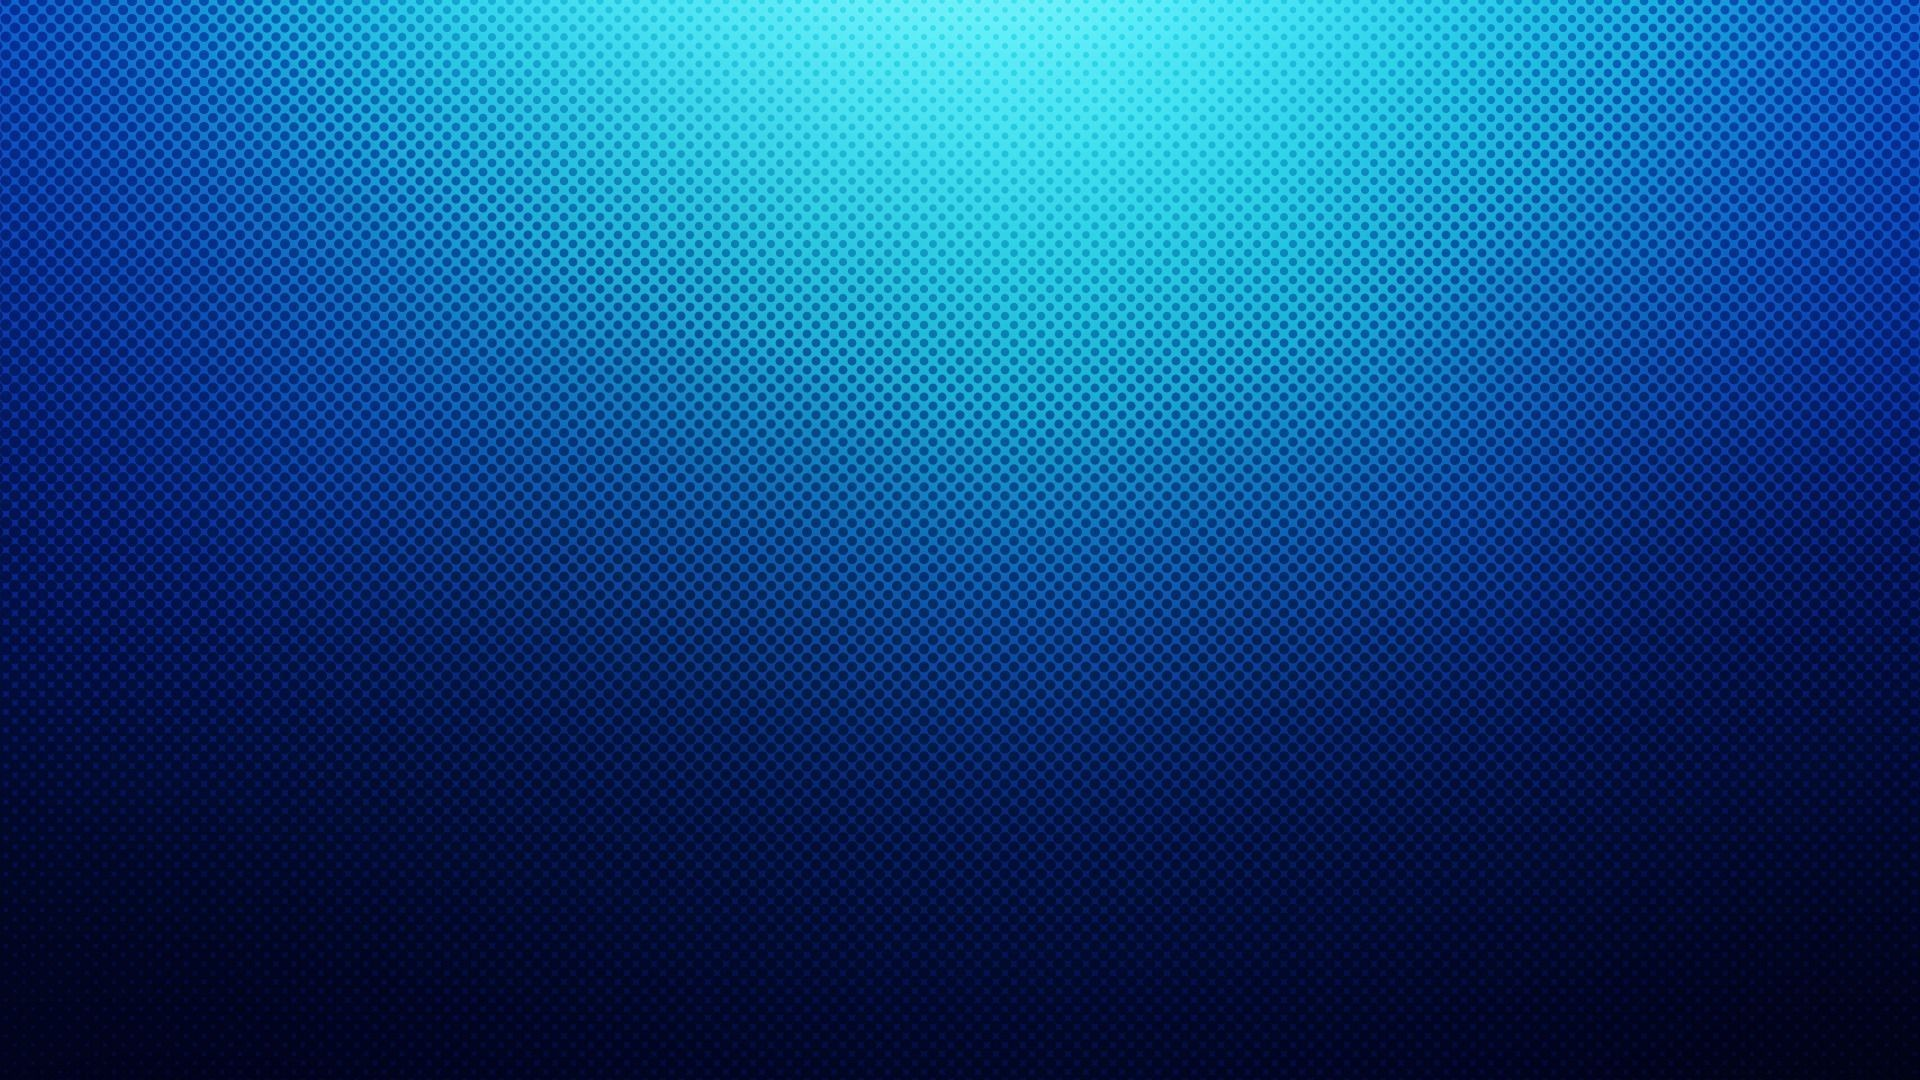 1920x1080 Blue dotted pattern HD Wallpaper